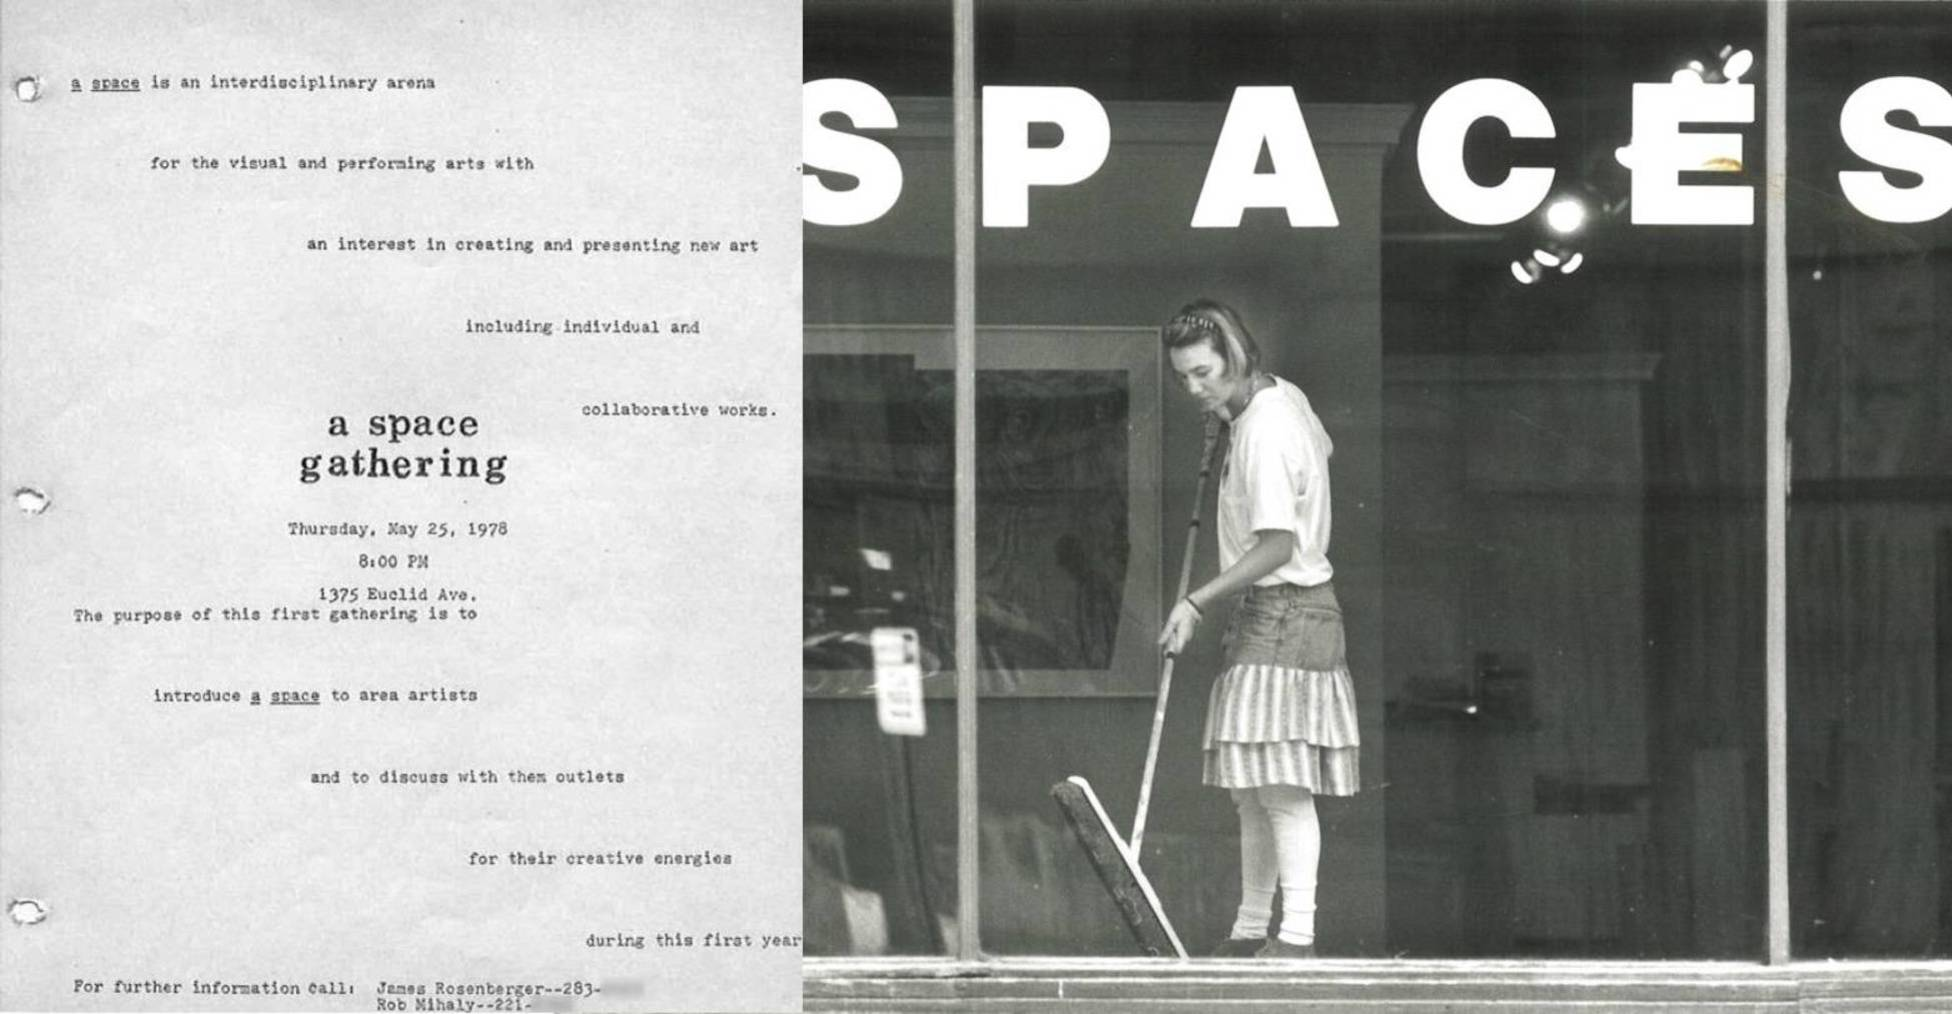 Spaces cleveland old documents and storefront